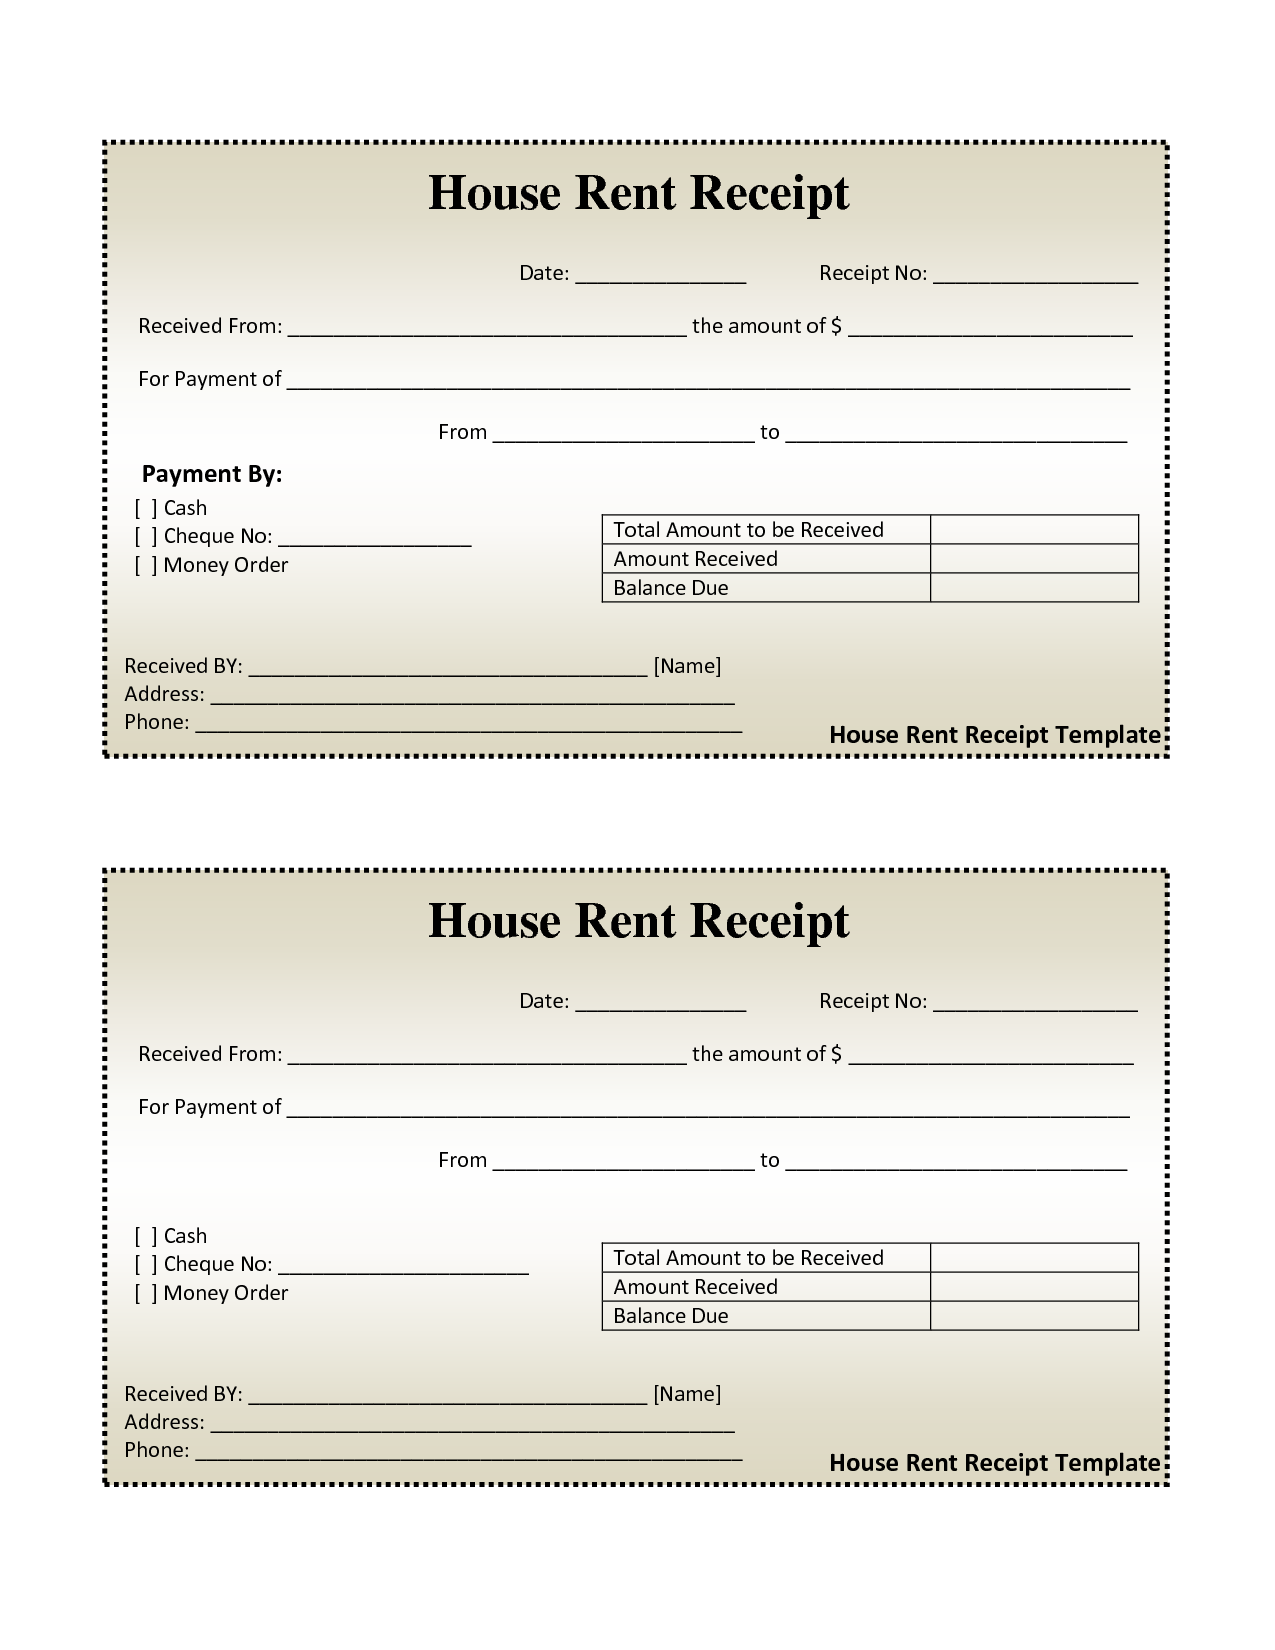 Sample House Rent Receipt business contract between two parties – Rent Receipt Sample